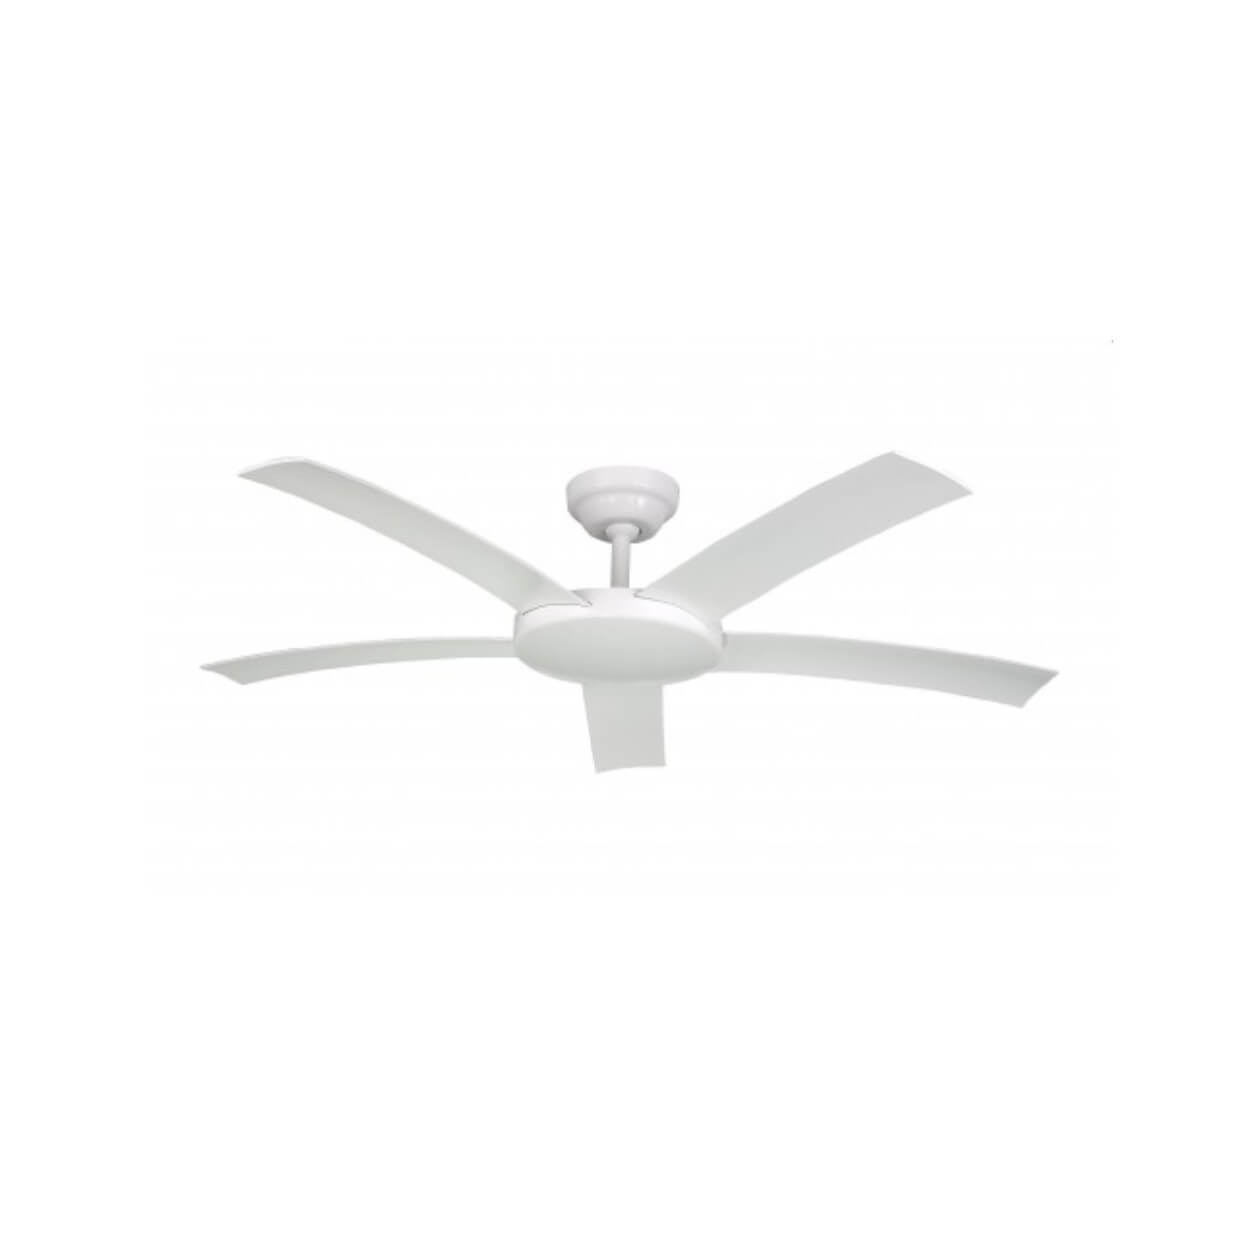 Outdoor Ceiling Fan Attitude White 132 Cm 52 With Remote Control Home Commercial Heaters Ventilation Ceiling Fans Uk